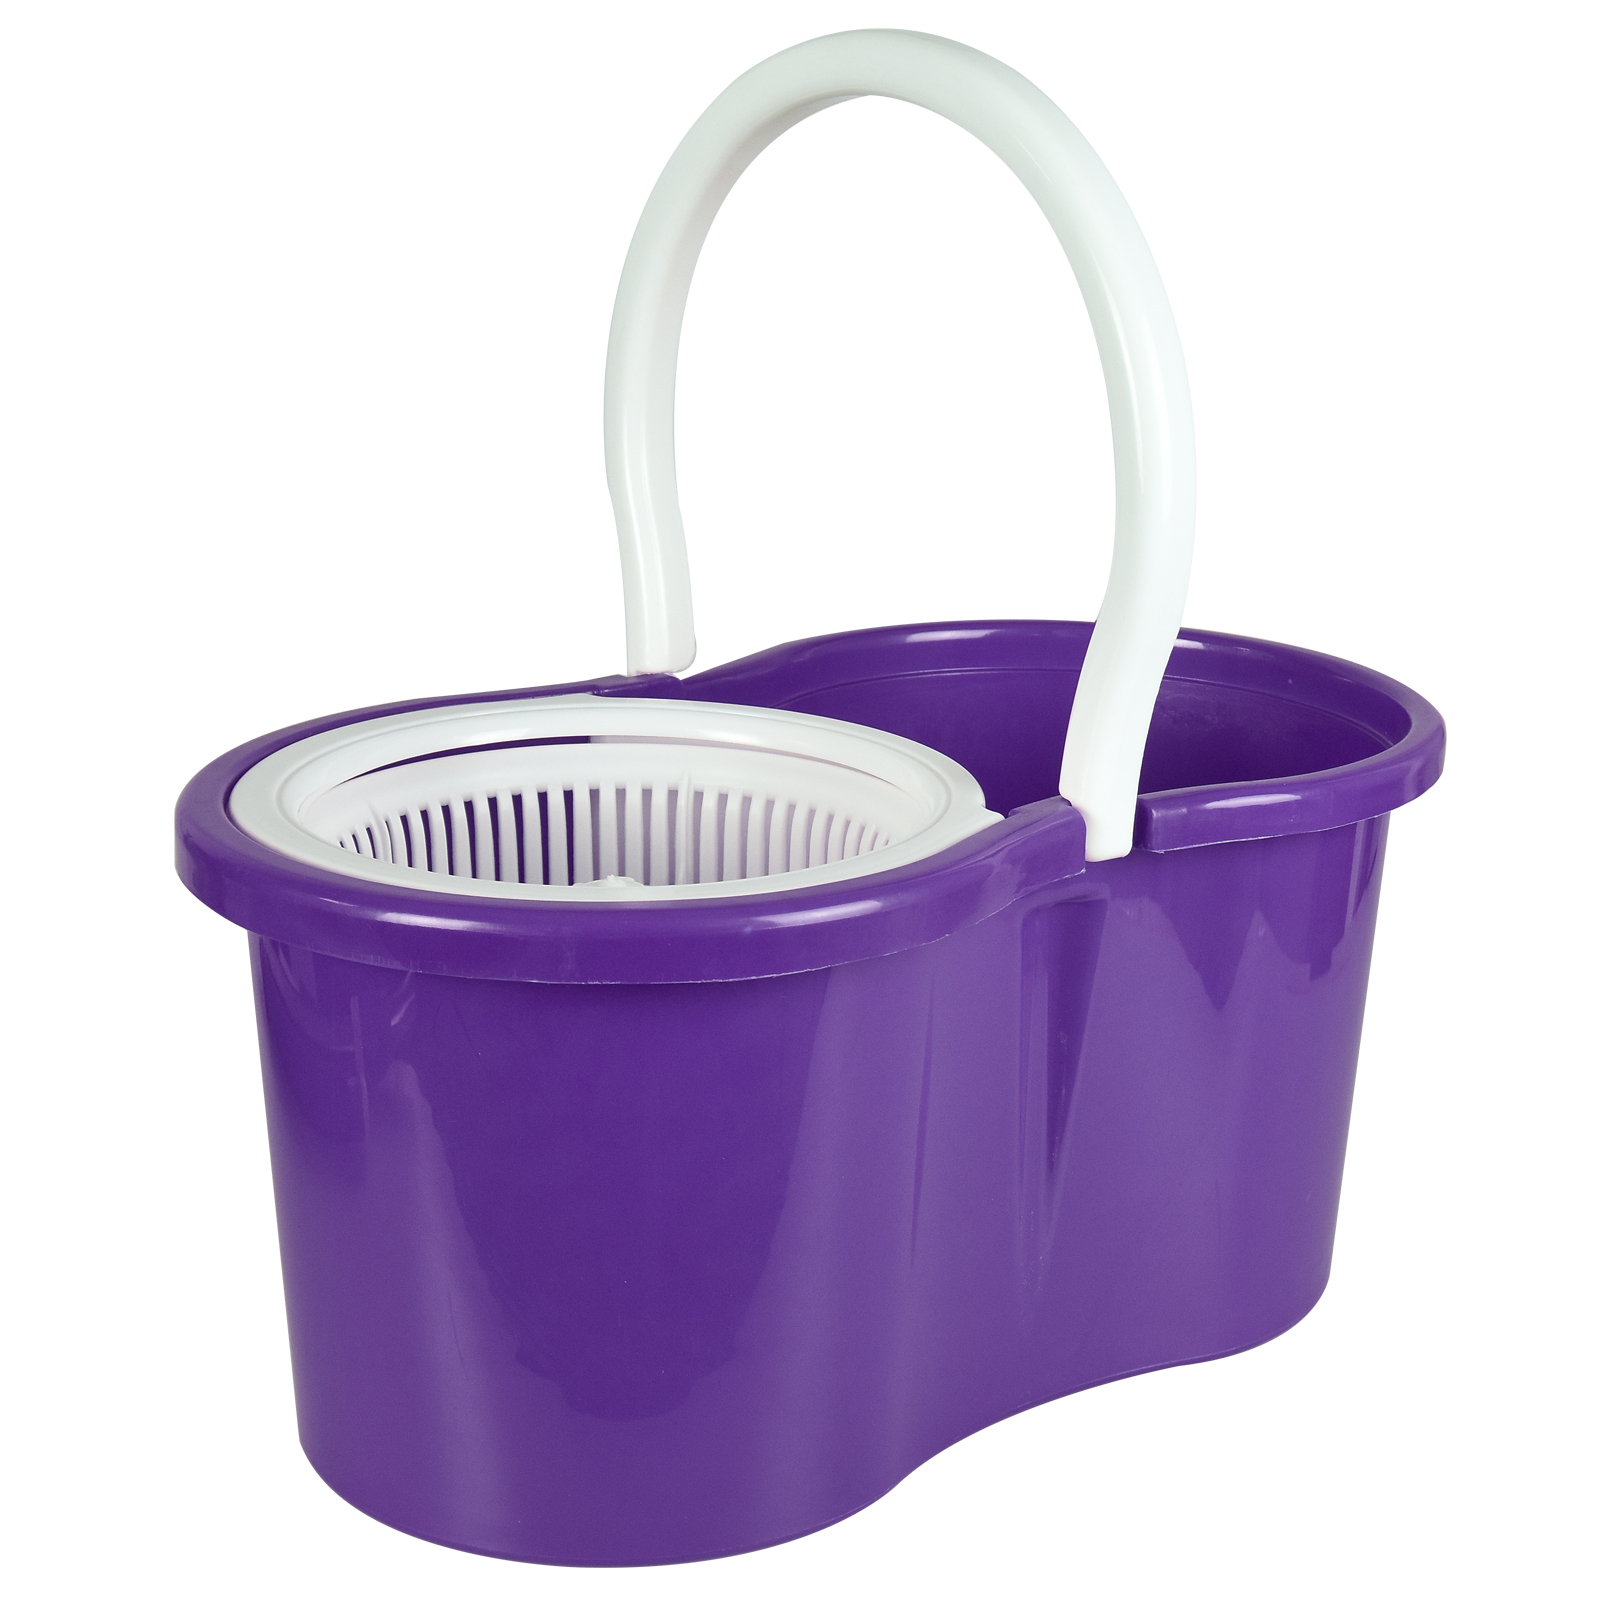 ASAB-spin-mop-and-bucket-purple-3